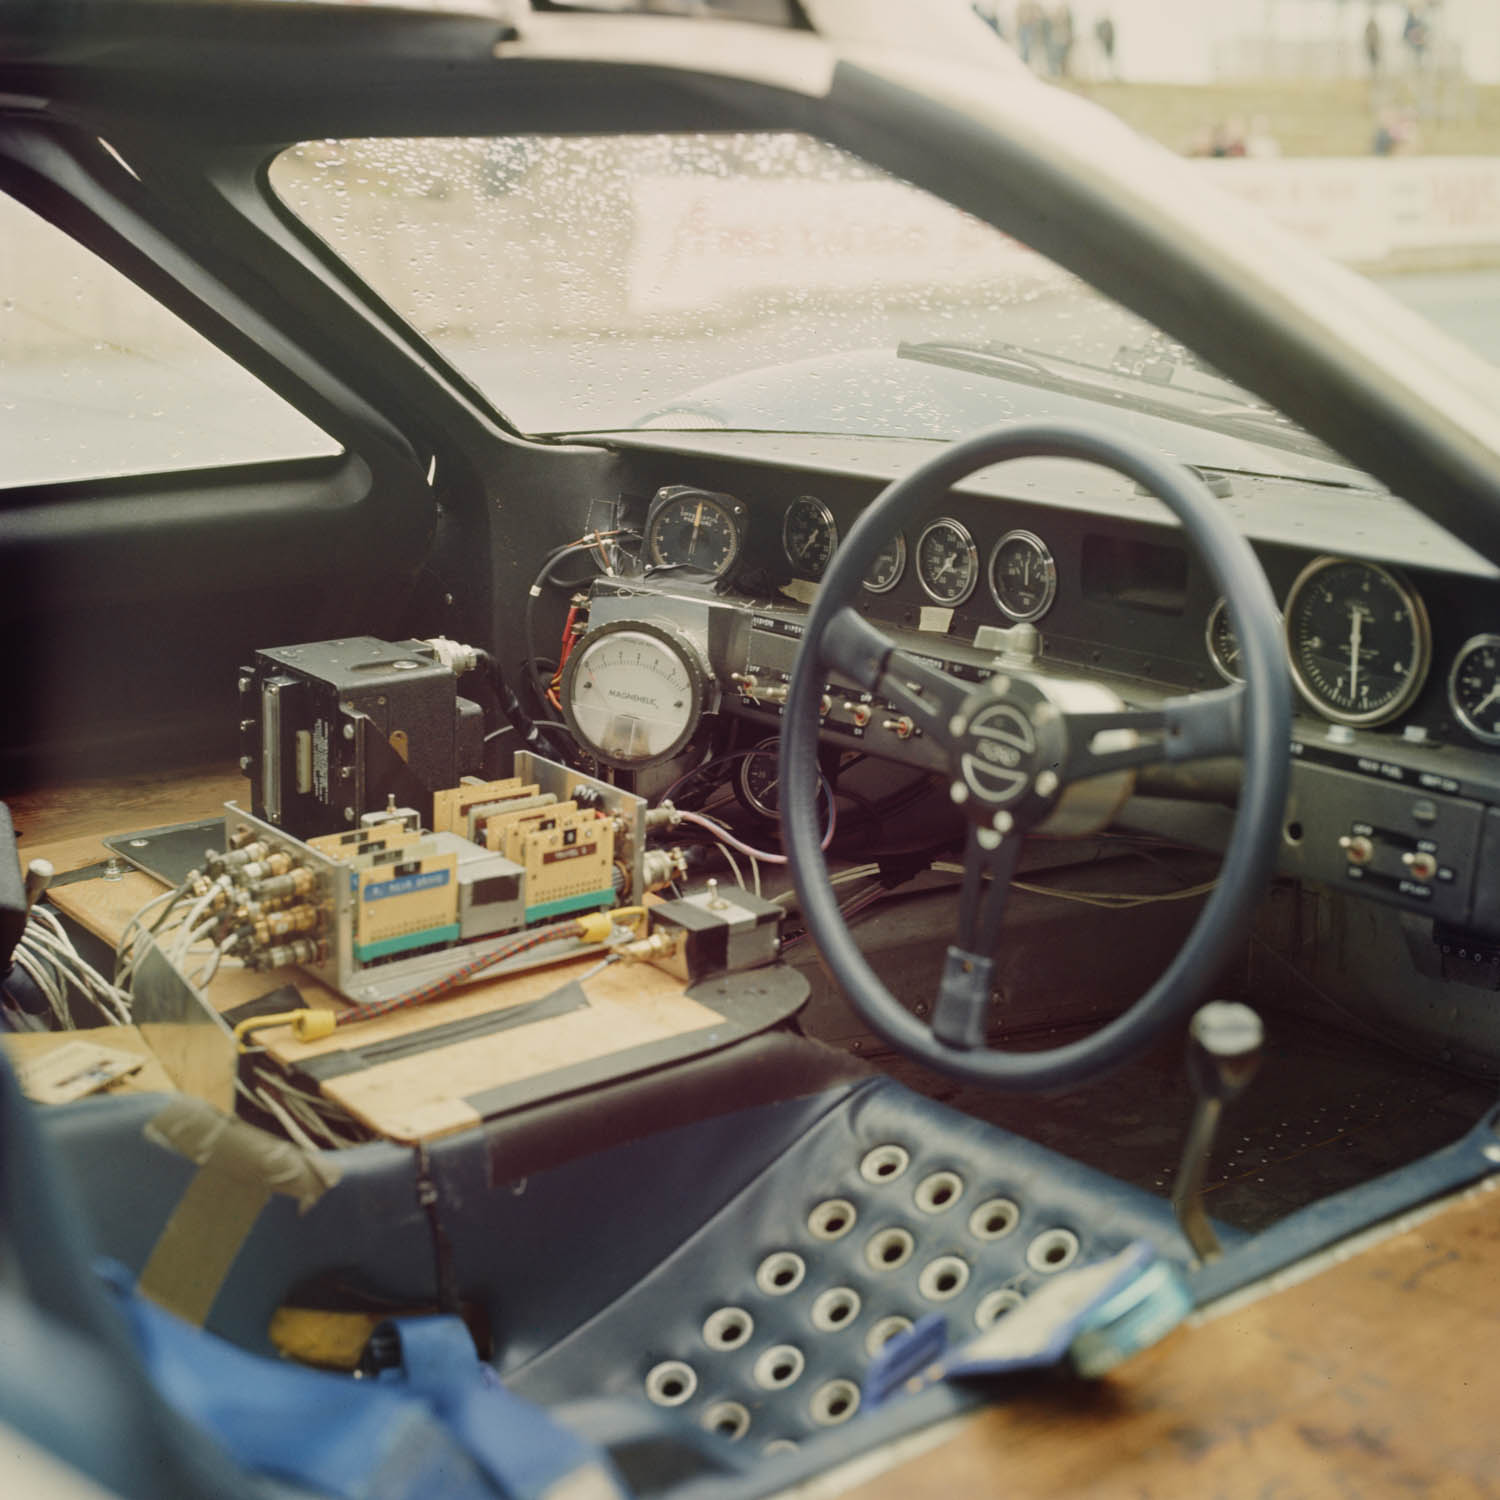 An interior view of a Ford J-car, which set the fastest lap time in Le Mans testing ahead of the 1966 race. Note the instruments for data gathering.